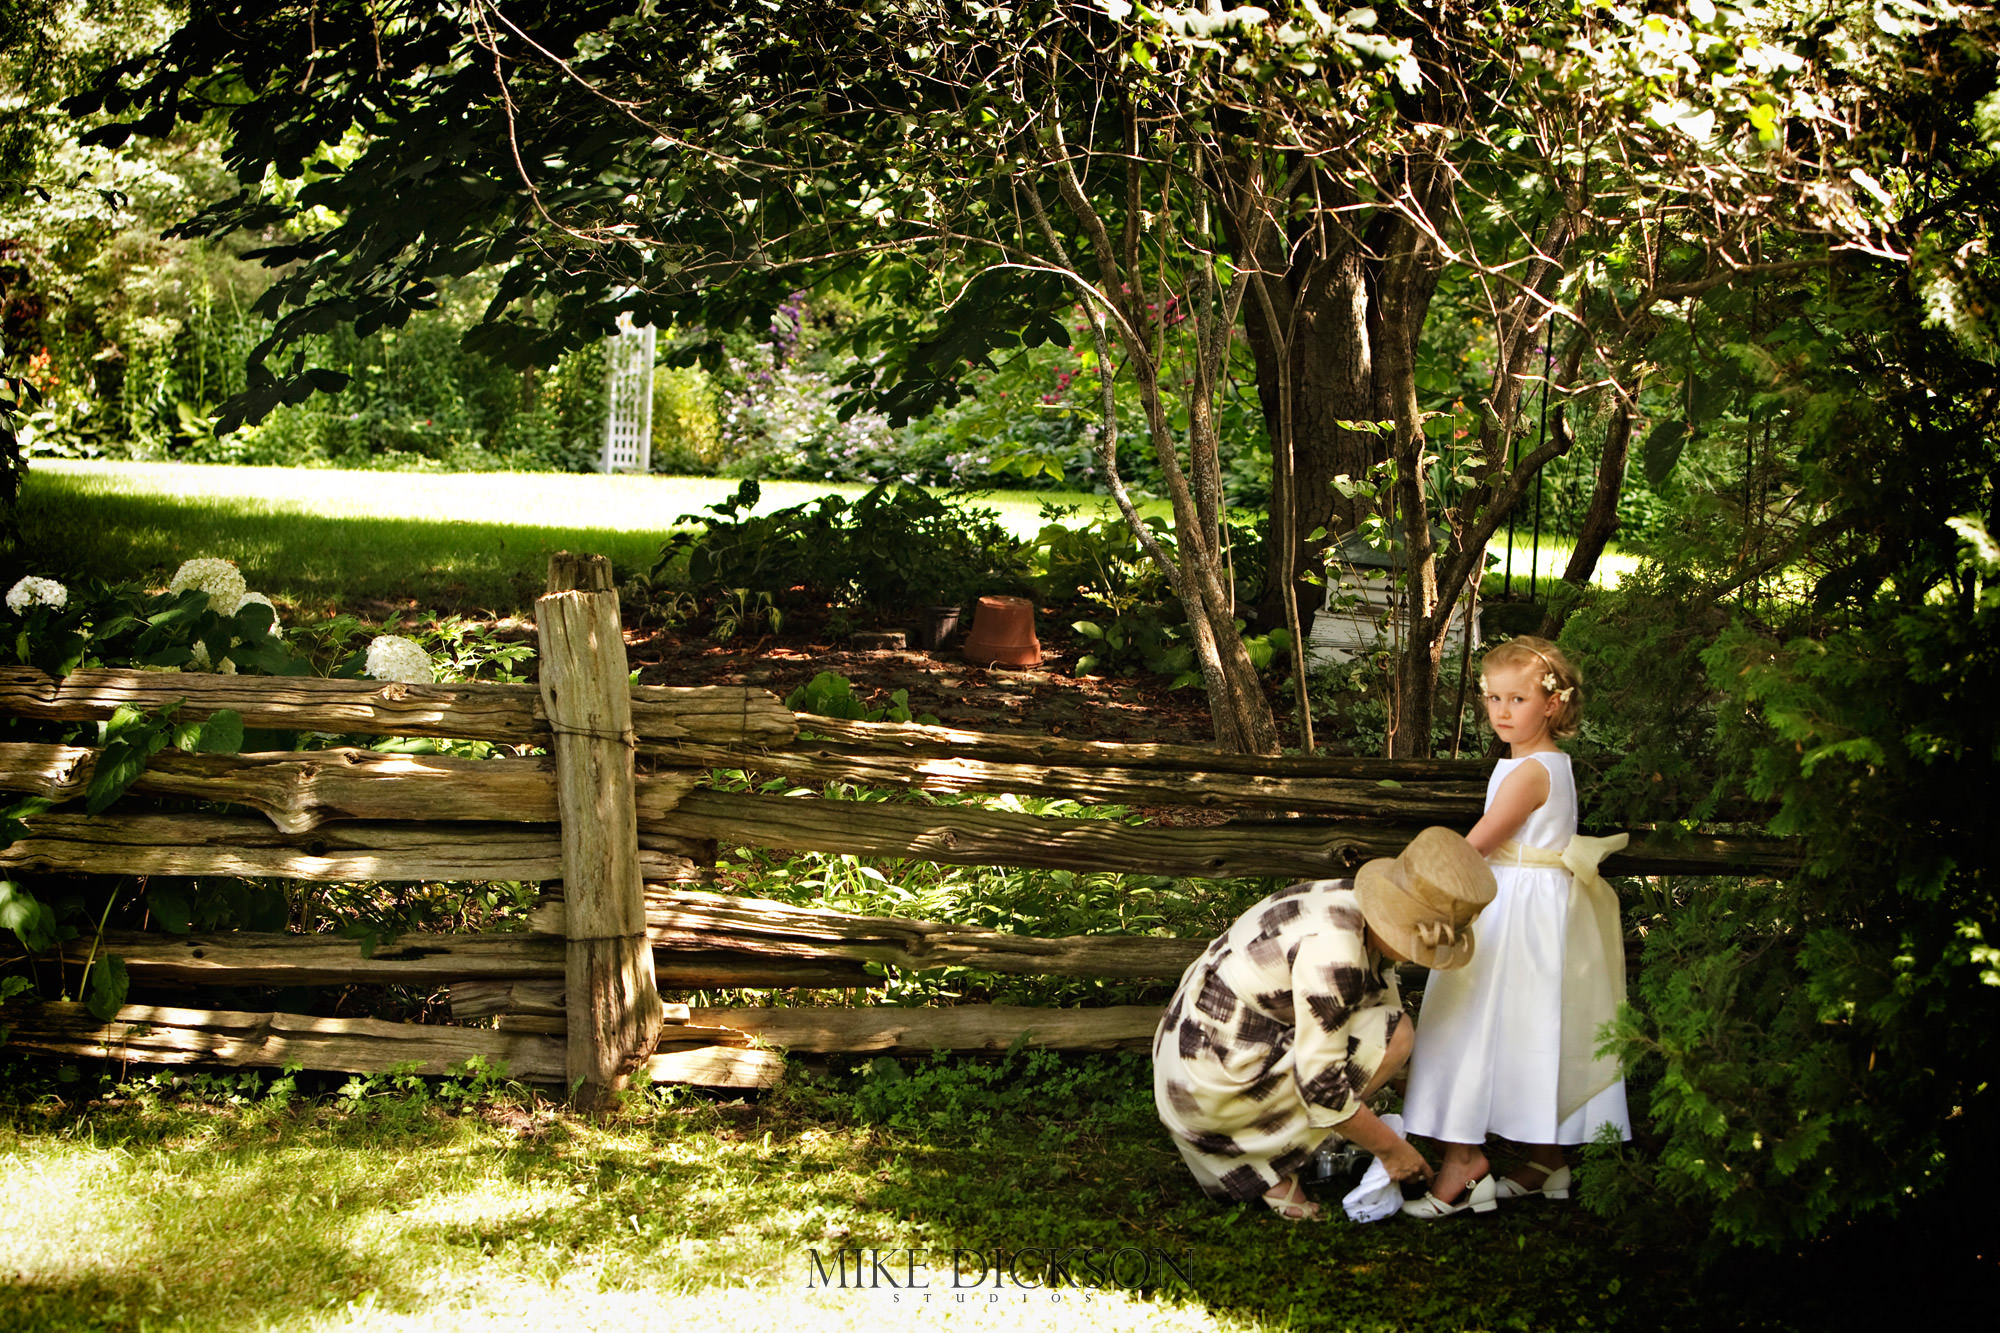 Family, Manotic Old Mill, Manotick, Ontario, Ottawa, Summer, Wedding, © Mike Dickson